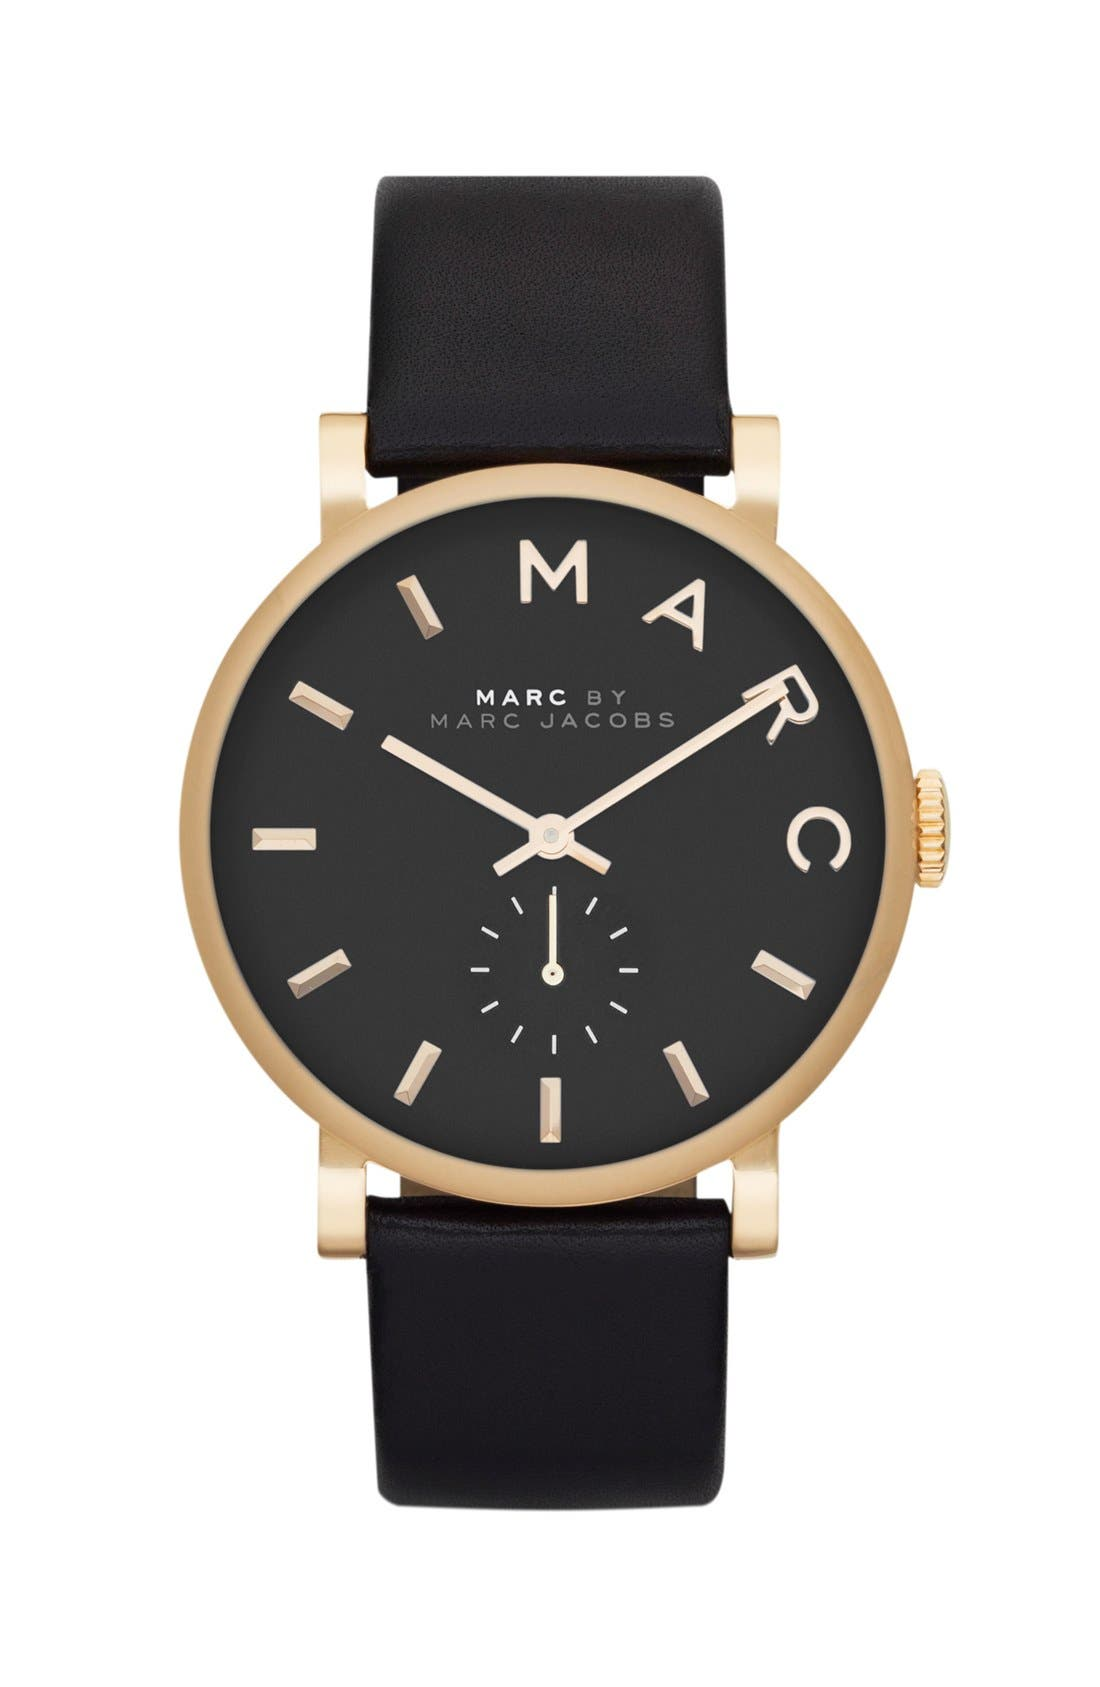 MARC JACOBS, 'Baker' Leather Strap Watch, 37mm, Main thumbnail 1, color, 001